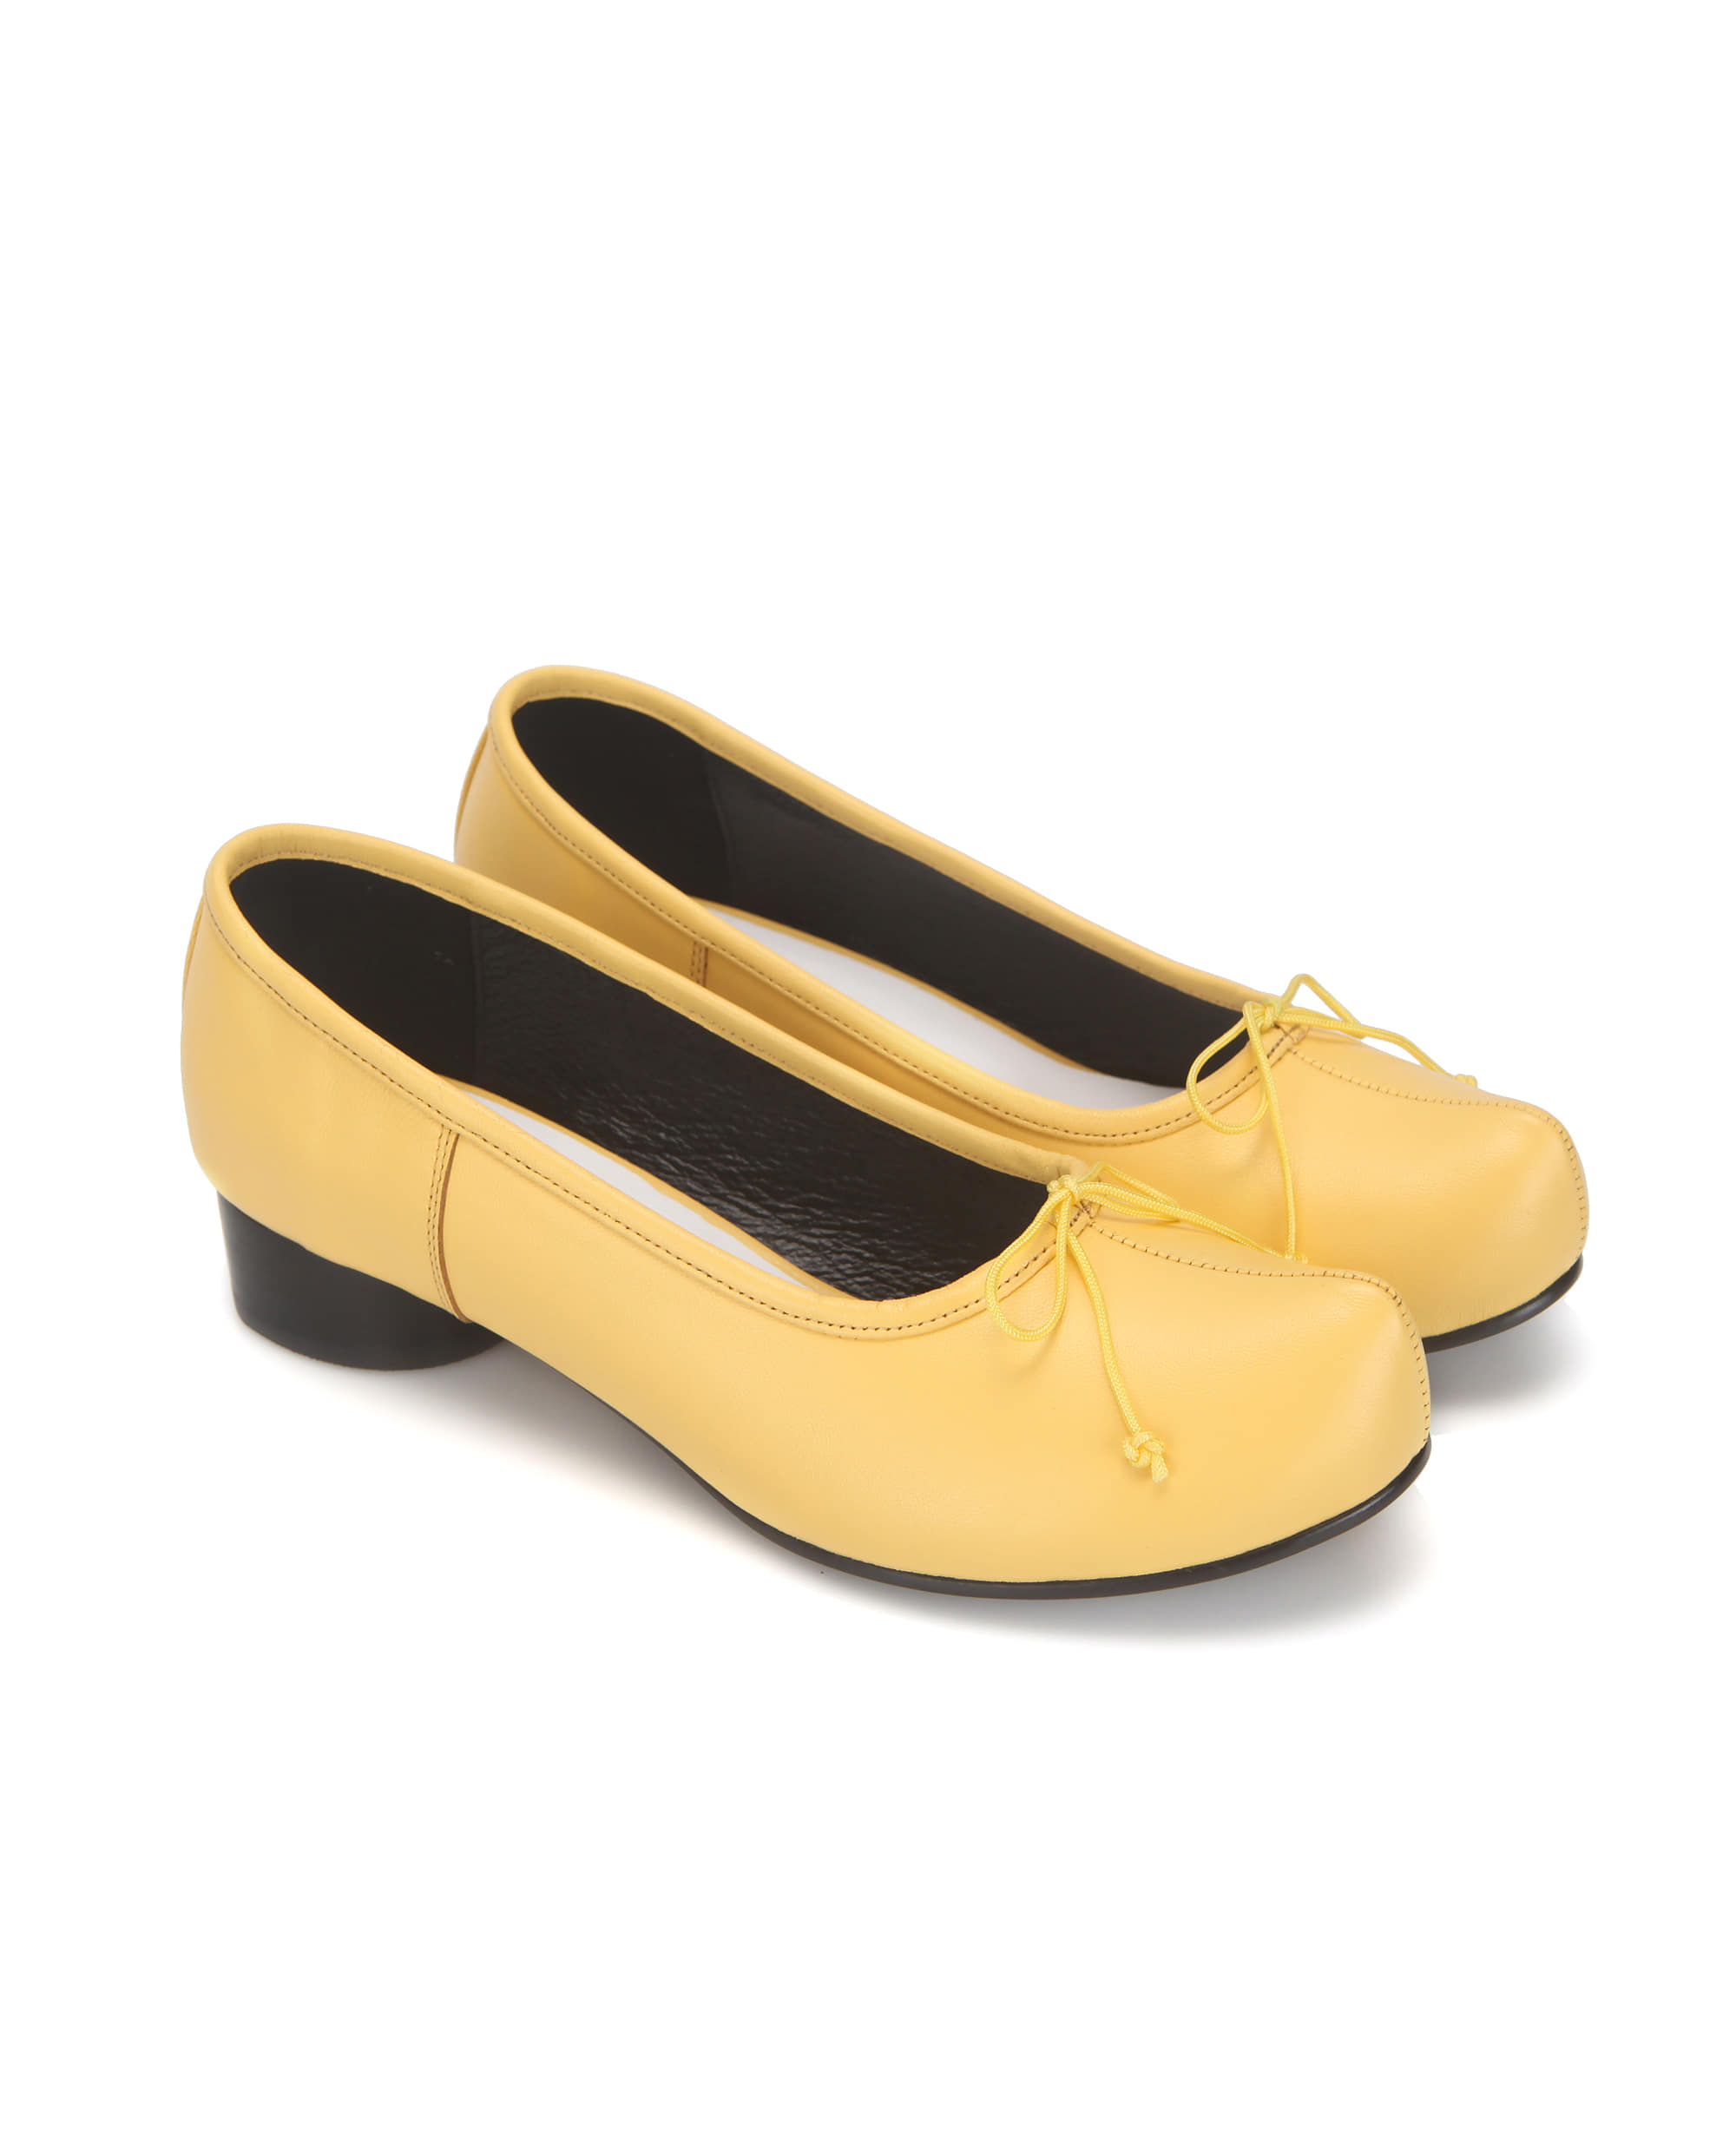 Pointed toe ballerina pumps | Yellow